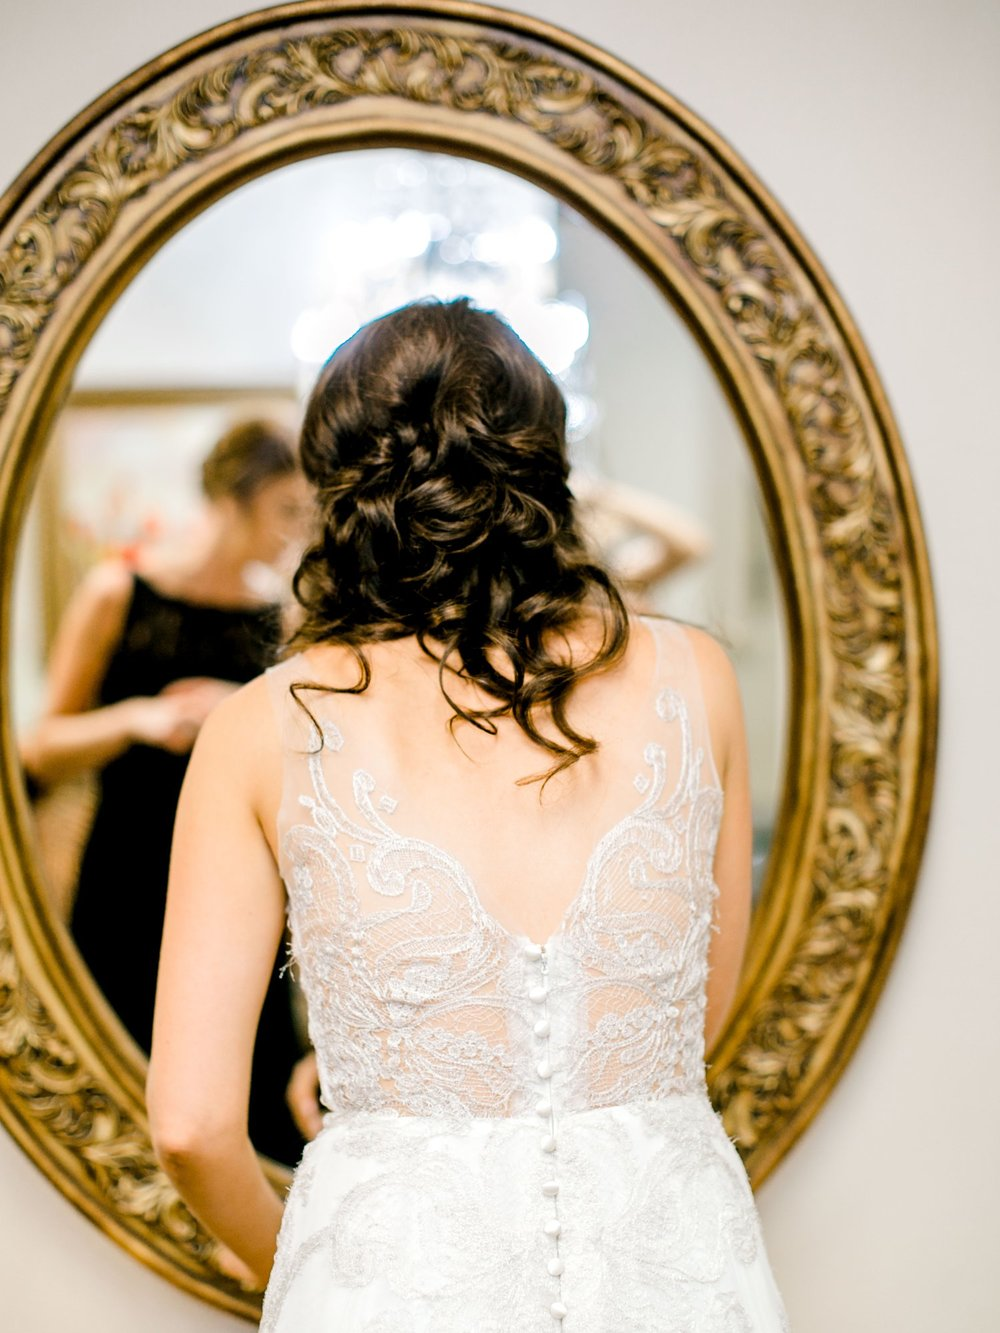 Hunter_and_Molly_Rawls_ALLEEJ_Lubbock_WEDDING_Legacy_Event_Center_0010.jpg